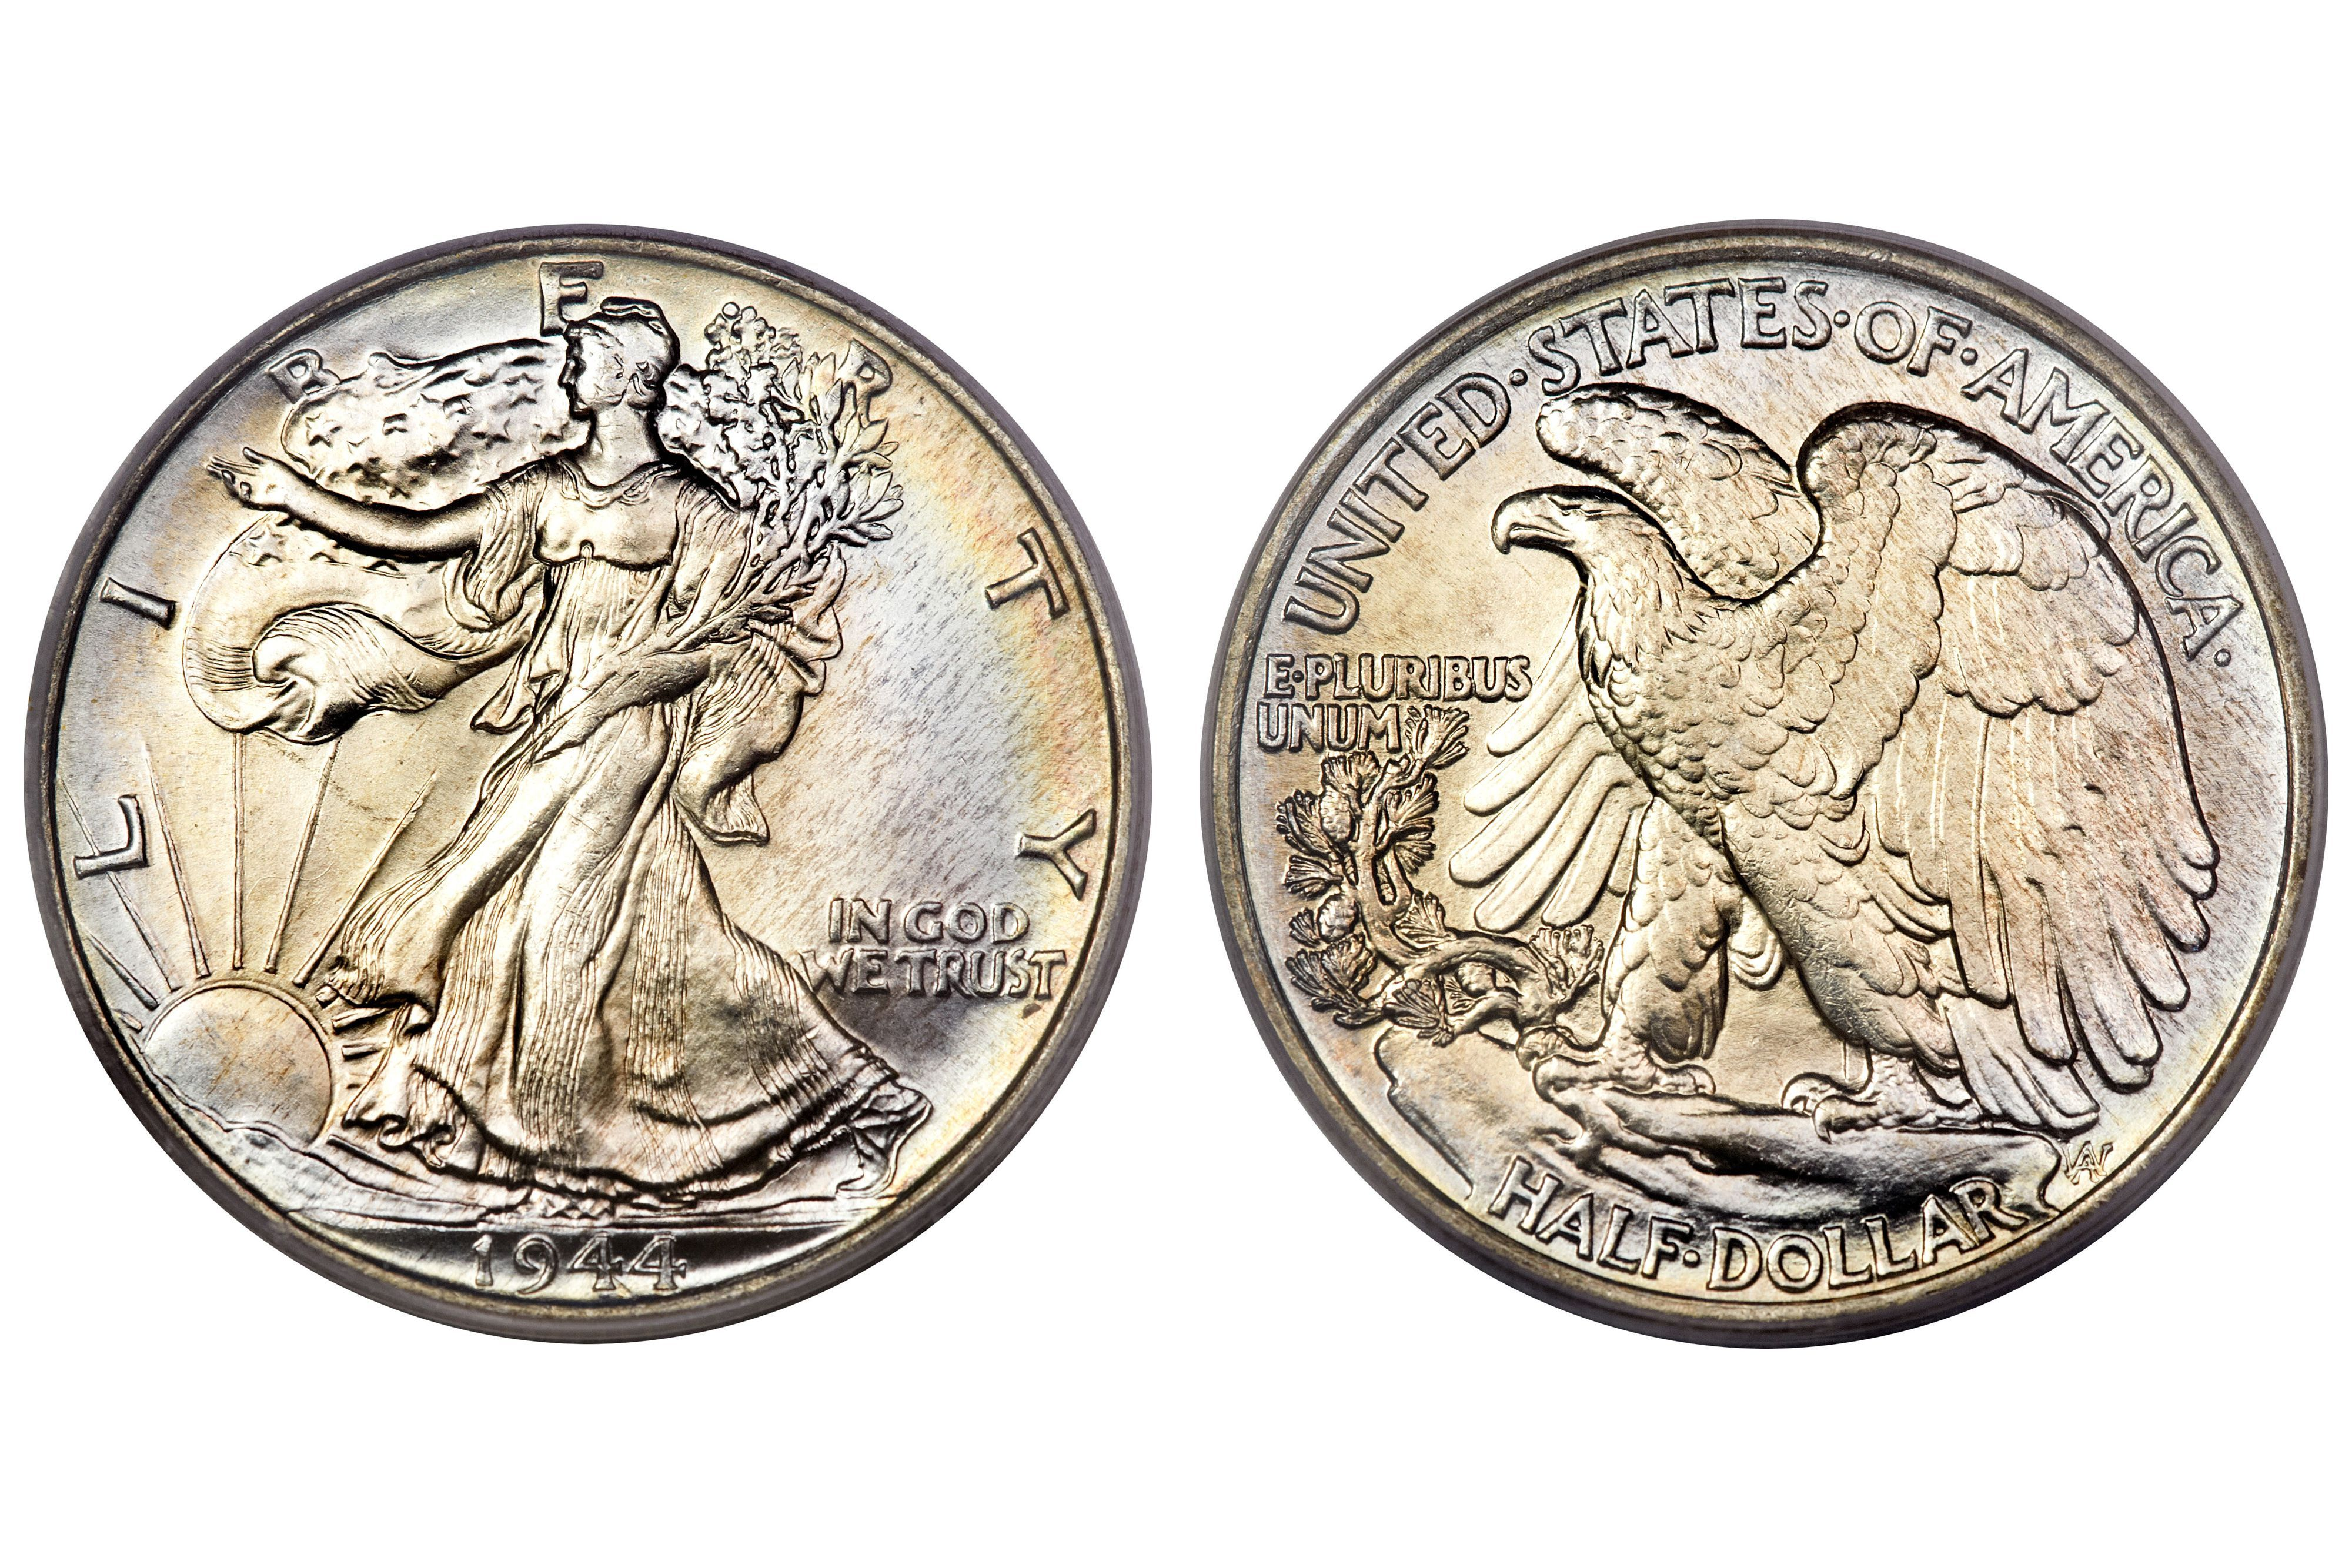 how much is a liberty coin worth